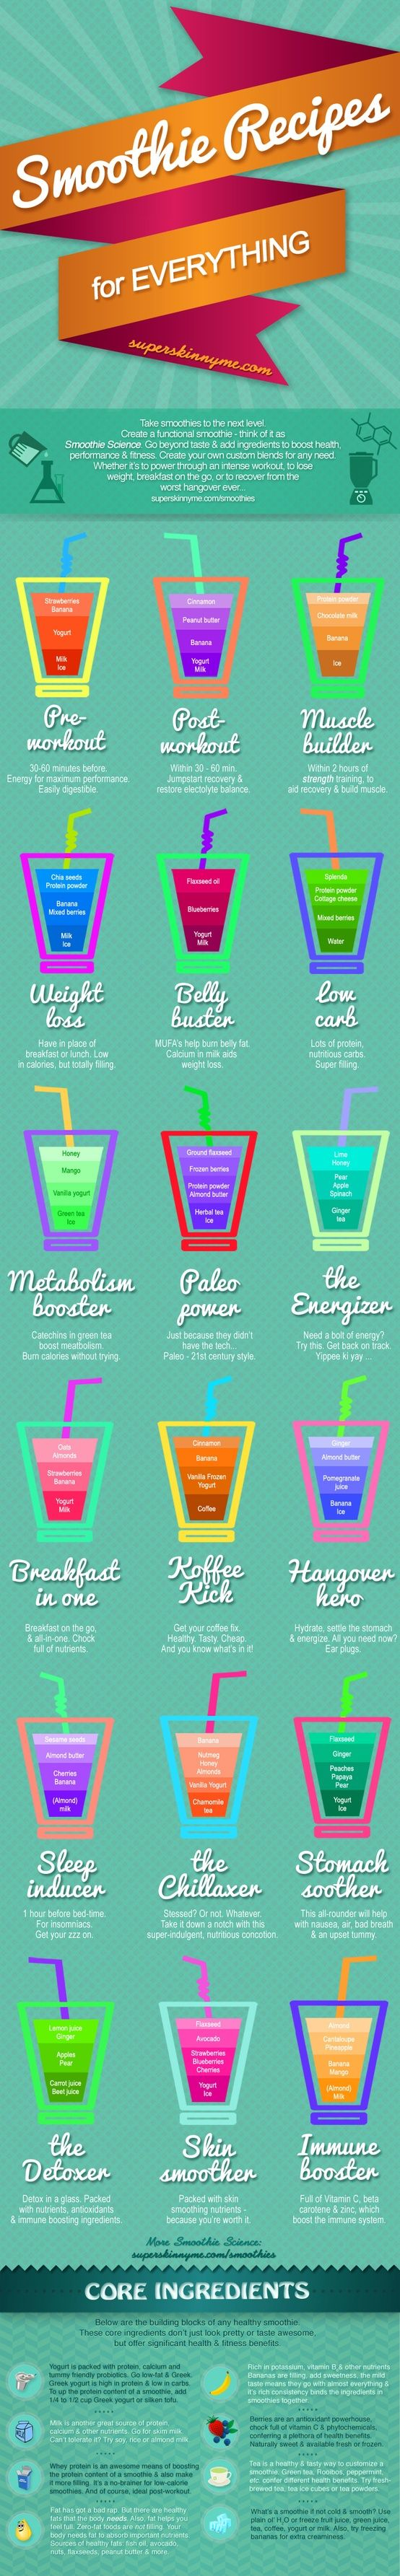 Smoothies Recipes for everything